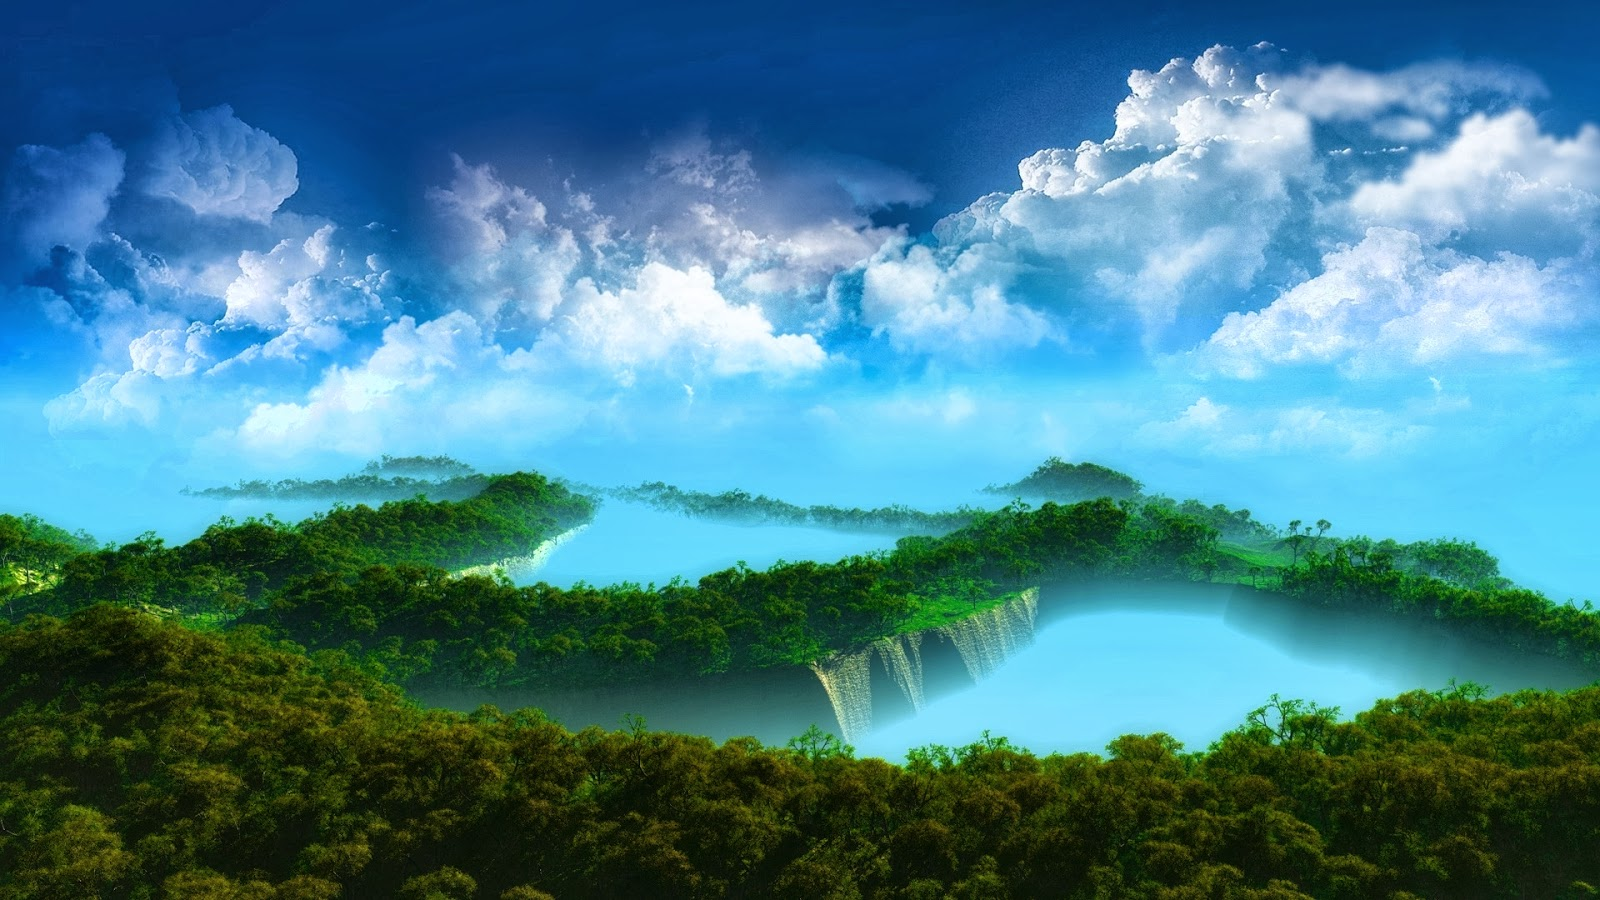 nature wallpaper in hd - wallpapersafari